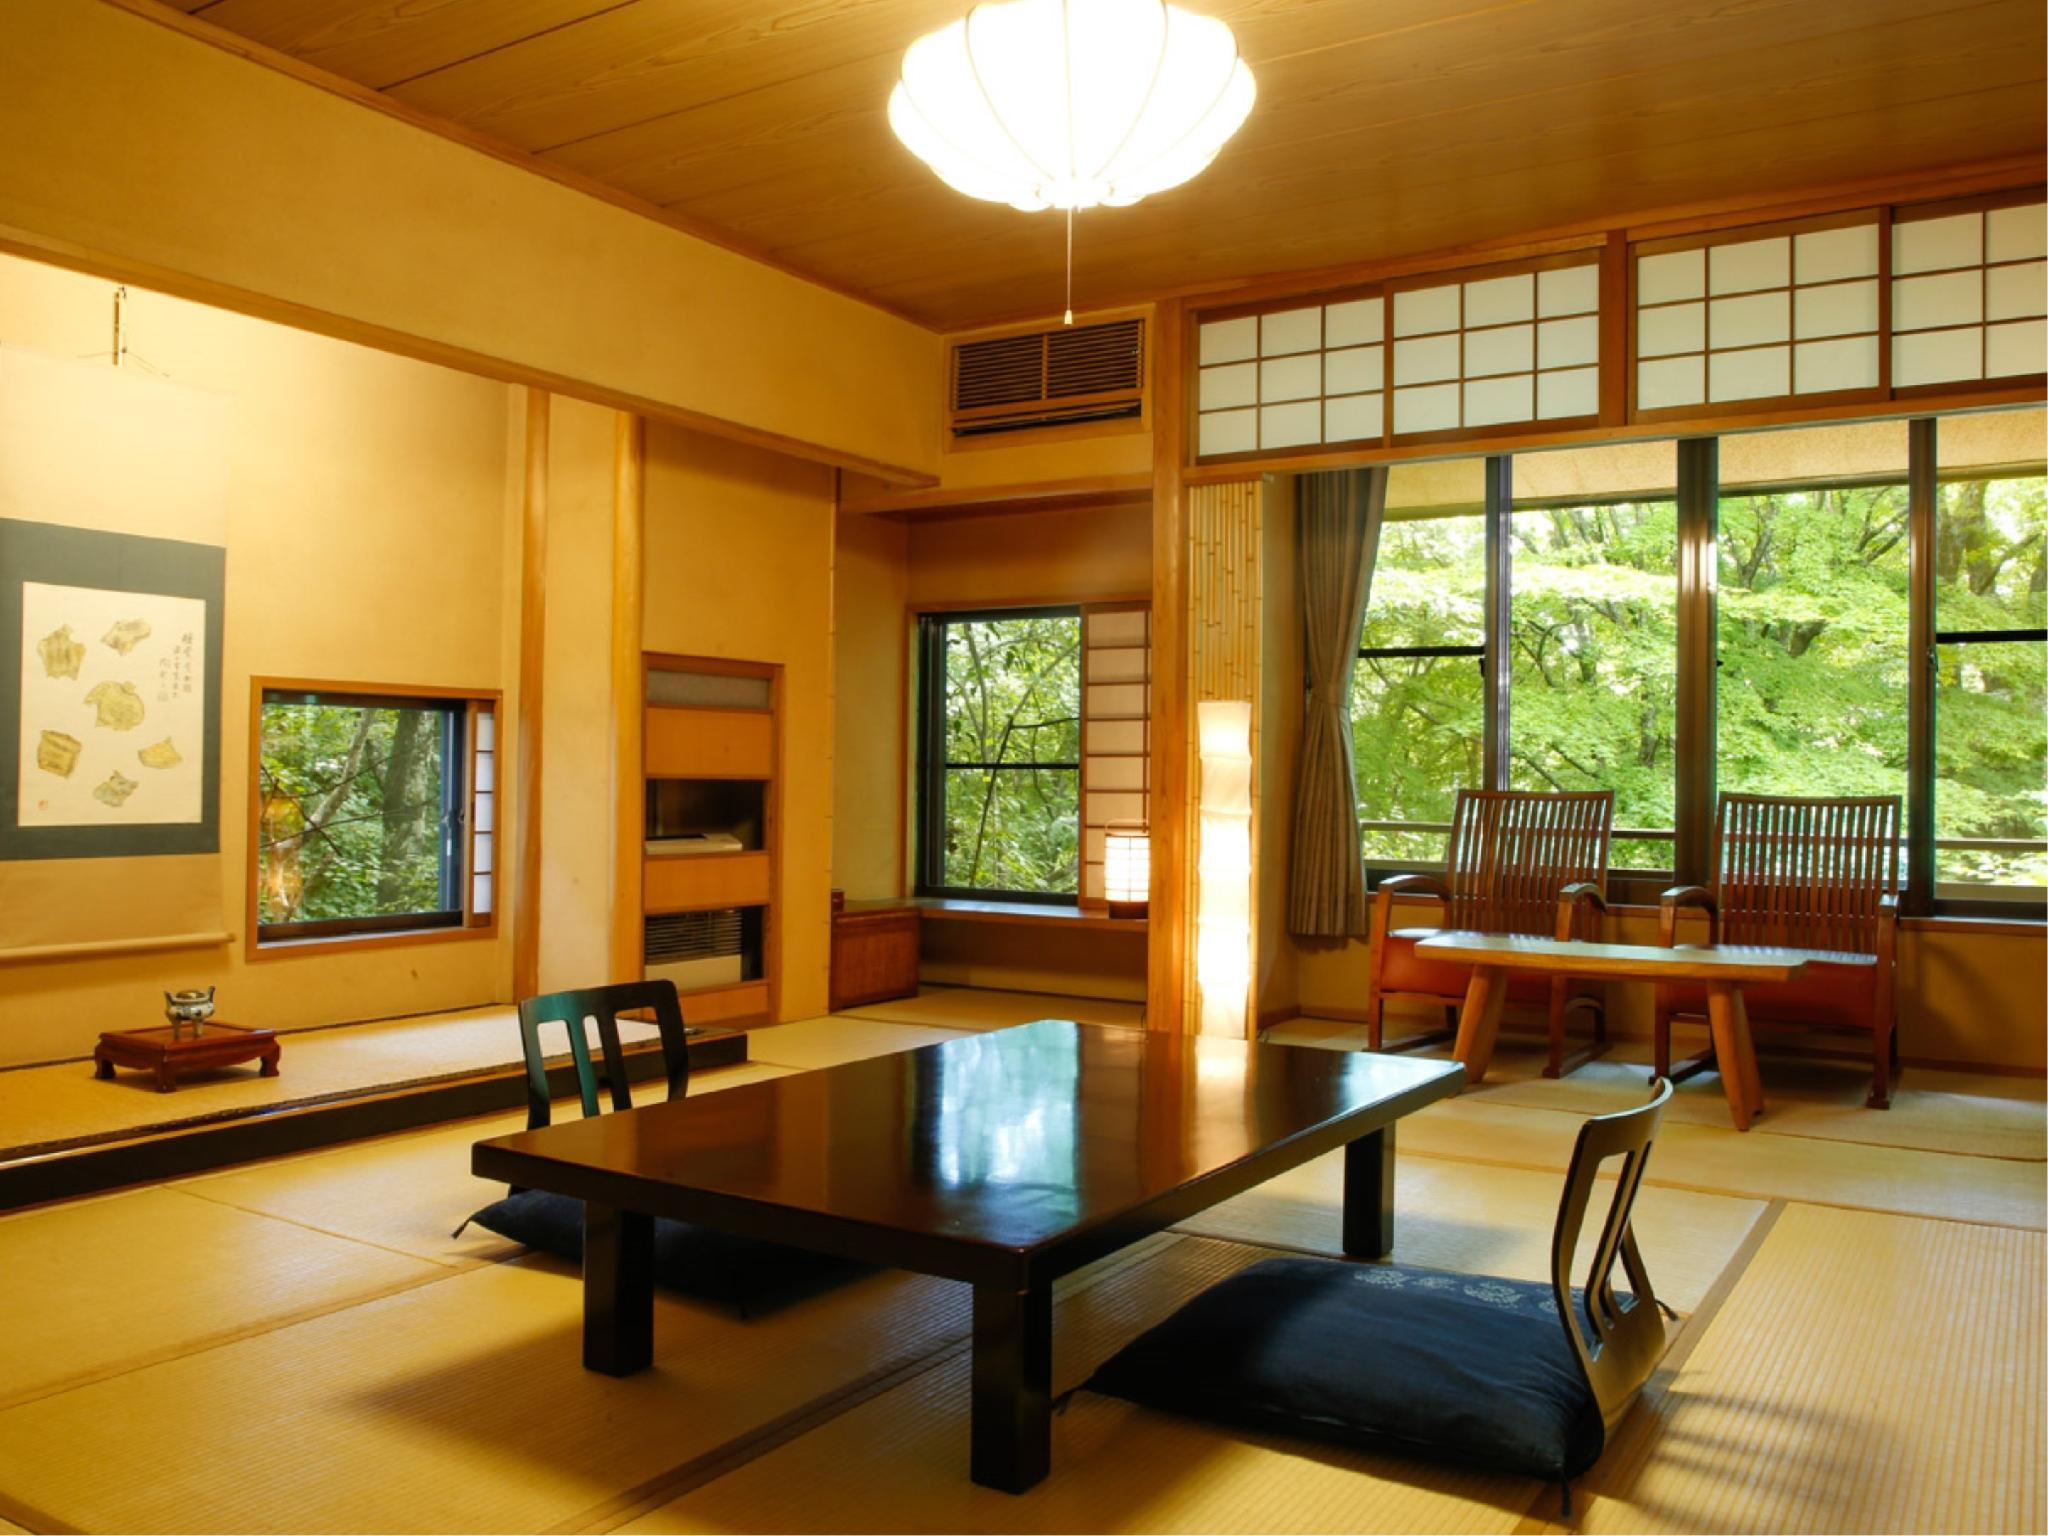 다다미 객실(BENIHANA/실내 히노키탕) (Japanese-style Room with Indoor Cypress Bath (Benihana Type))